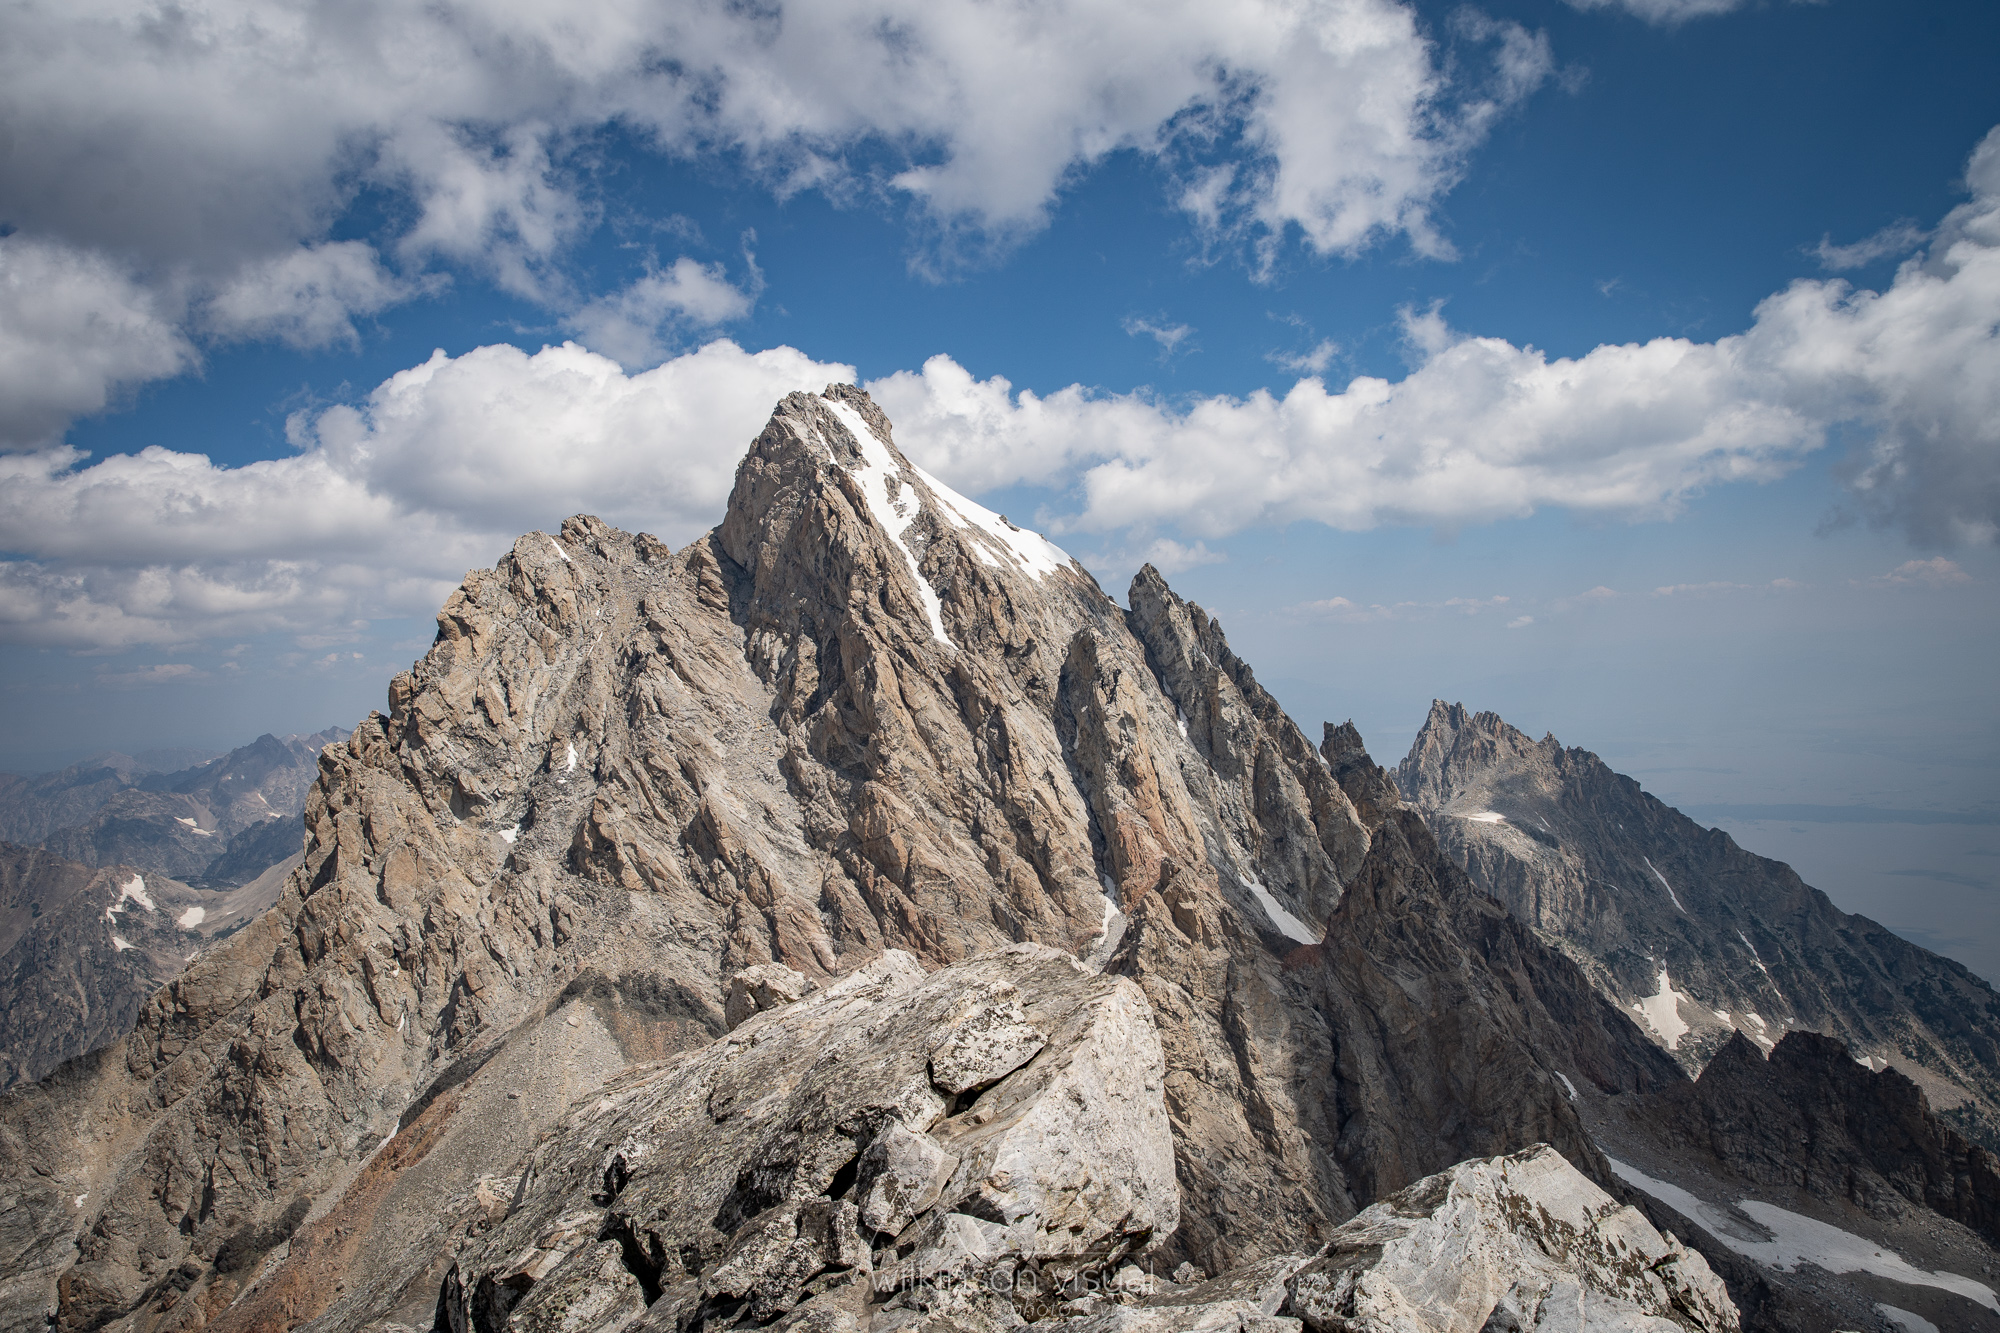 The Grand Teton (13,776ft) as seen from the summit of the Middle Teton (12,805ft).